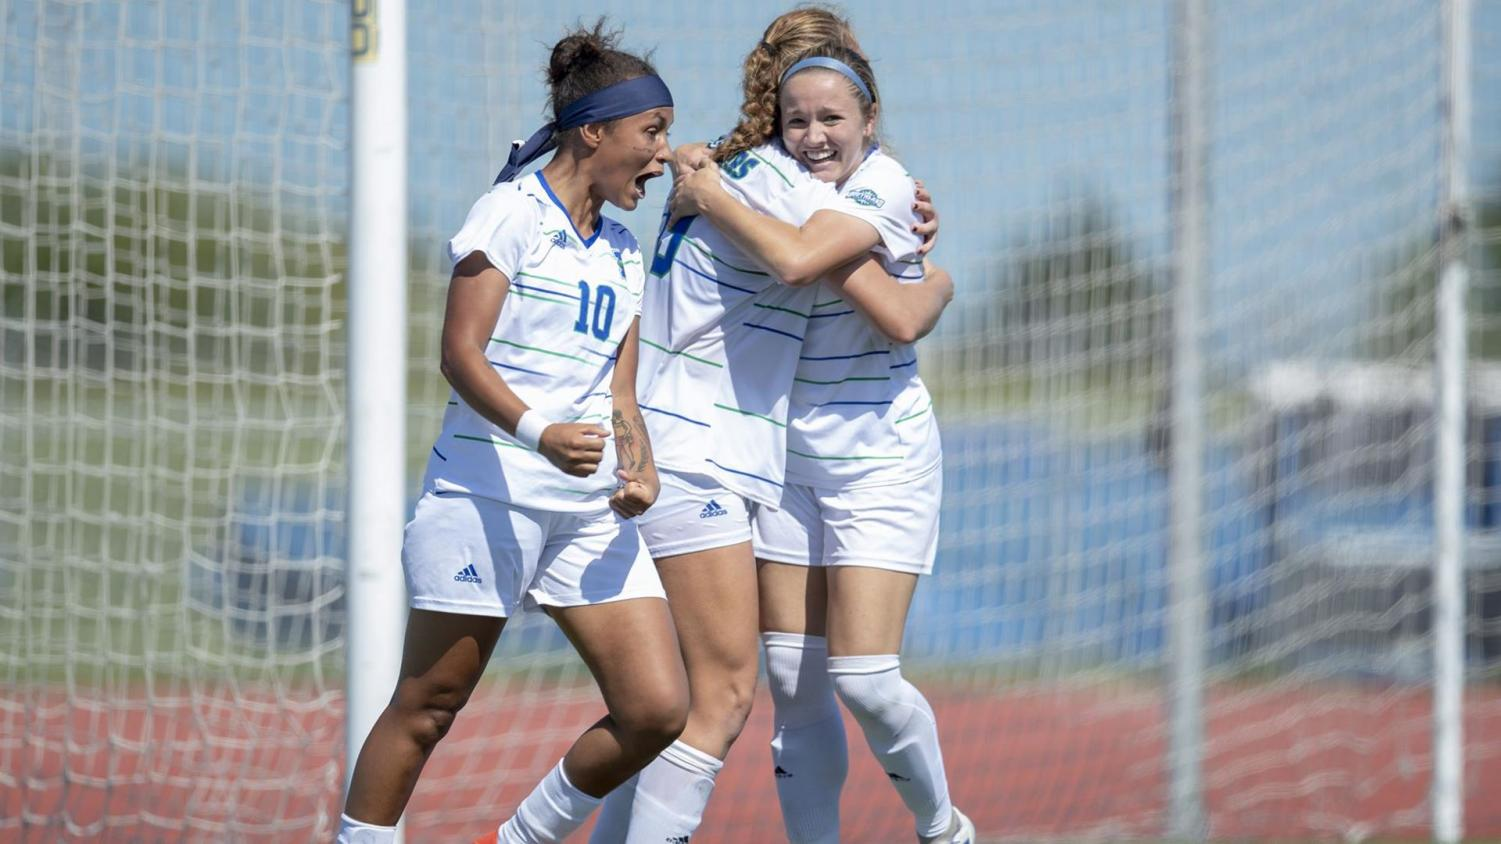 Photo courtesy of Islander Athletics - Athletes, Larissa Fagundes and Kayla Gove celebrating a 1-0 victory over Northwestern State. The lady Islanders clinch a Southland Conference tournament berth with Friday's win.